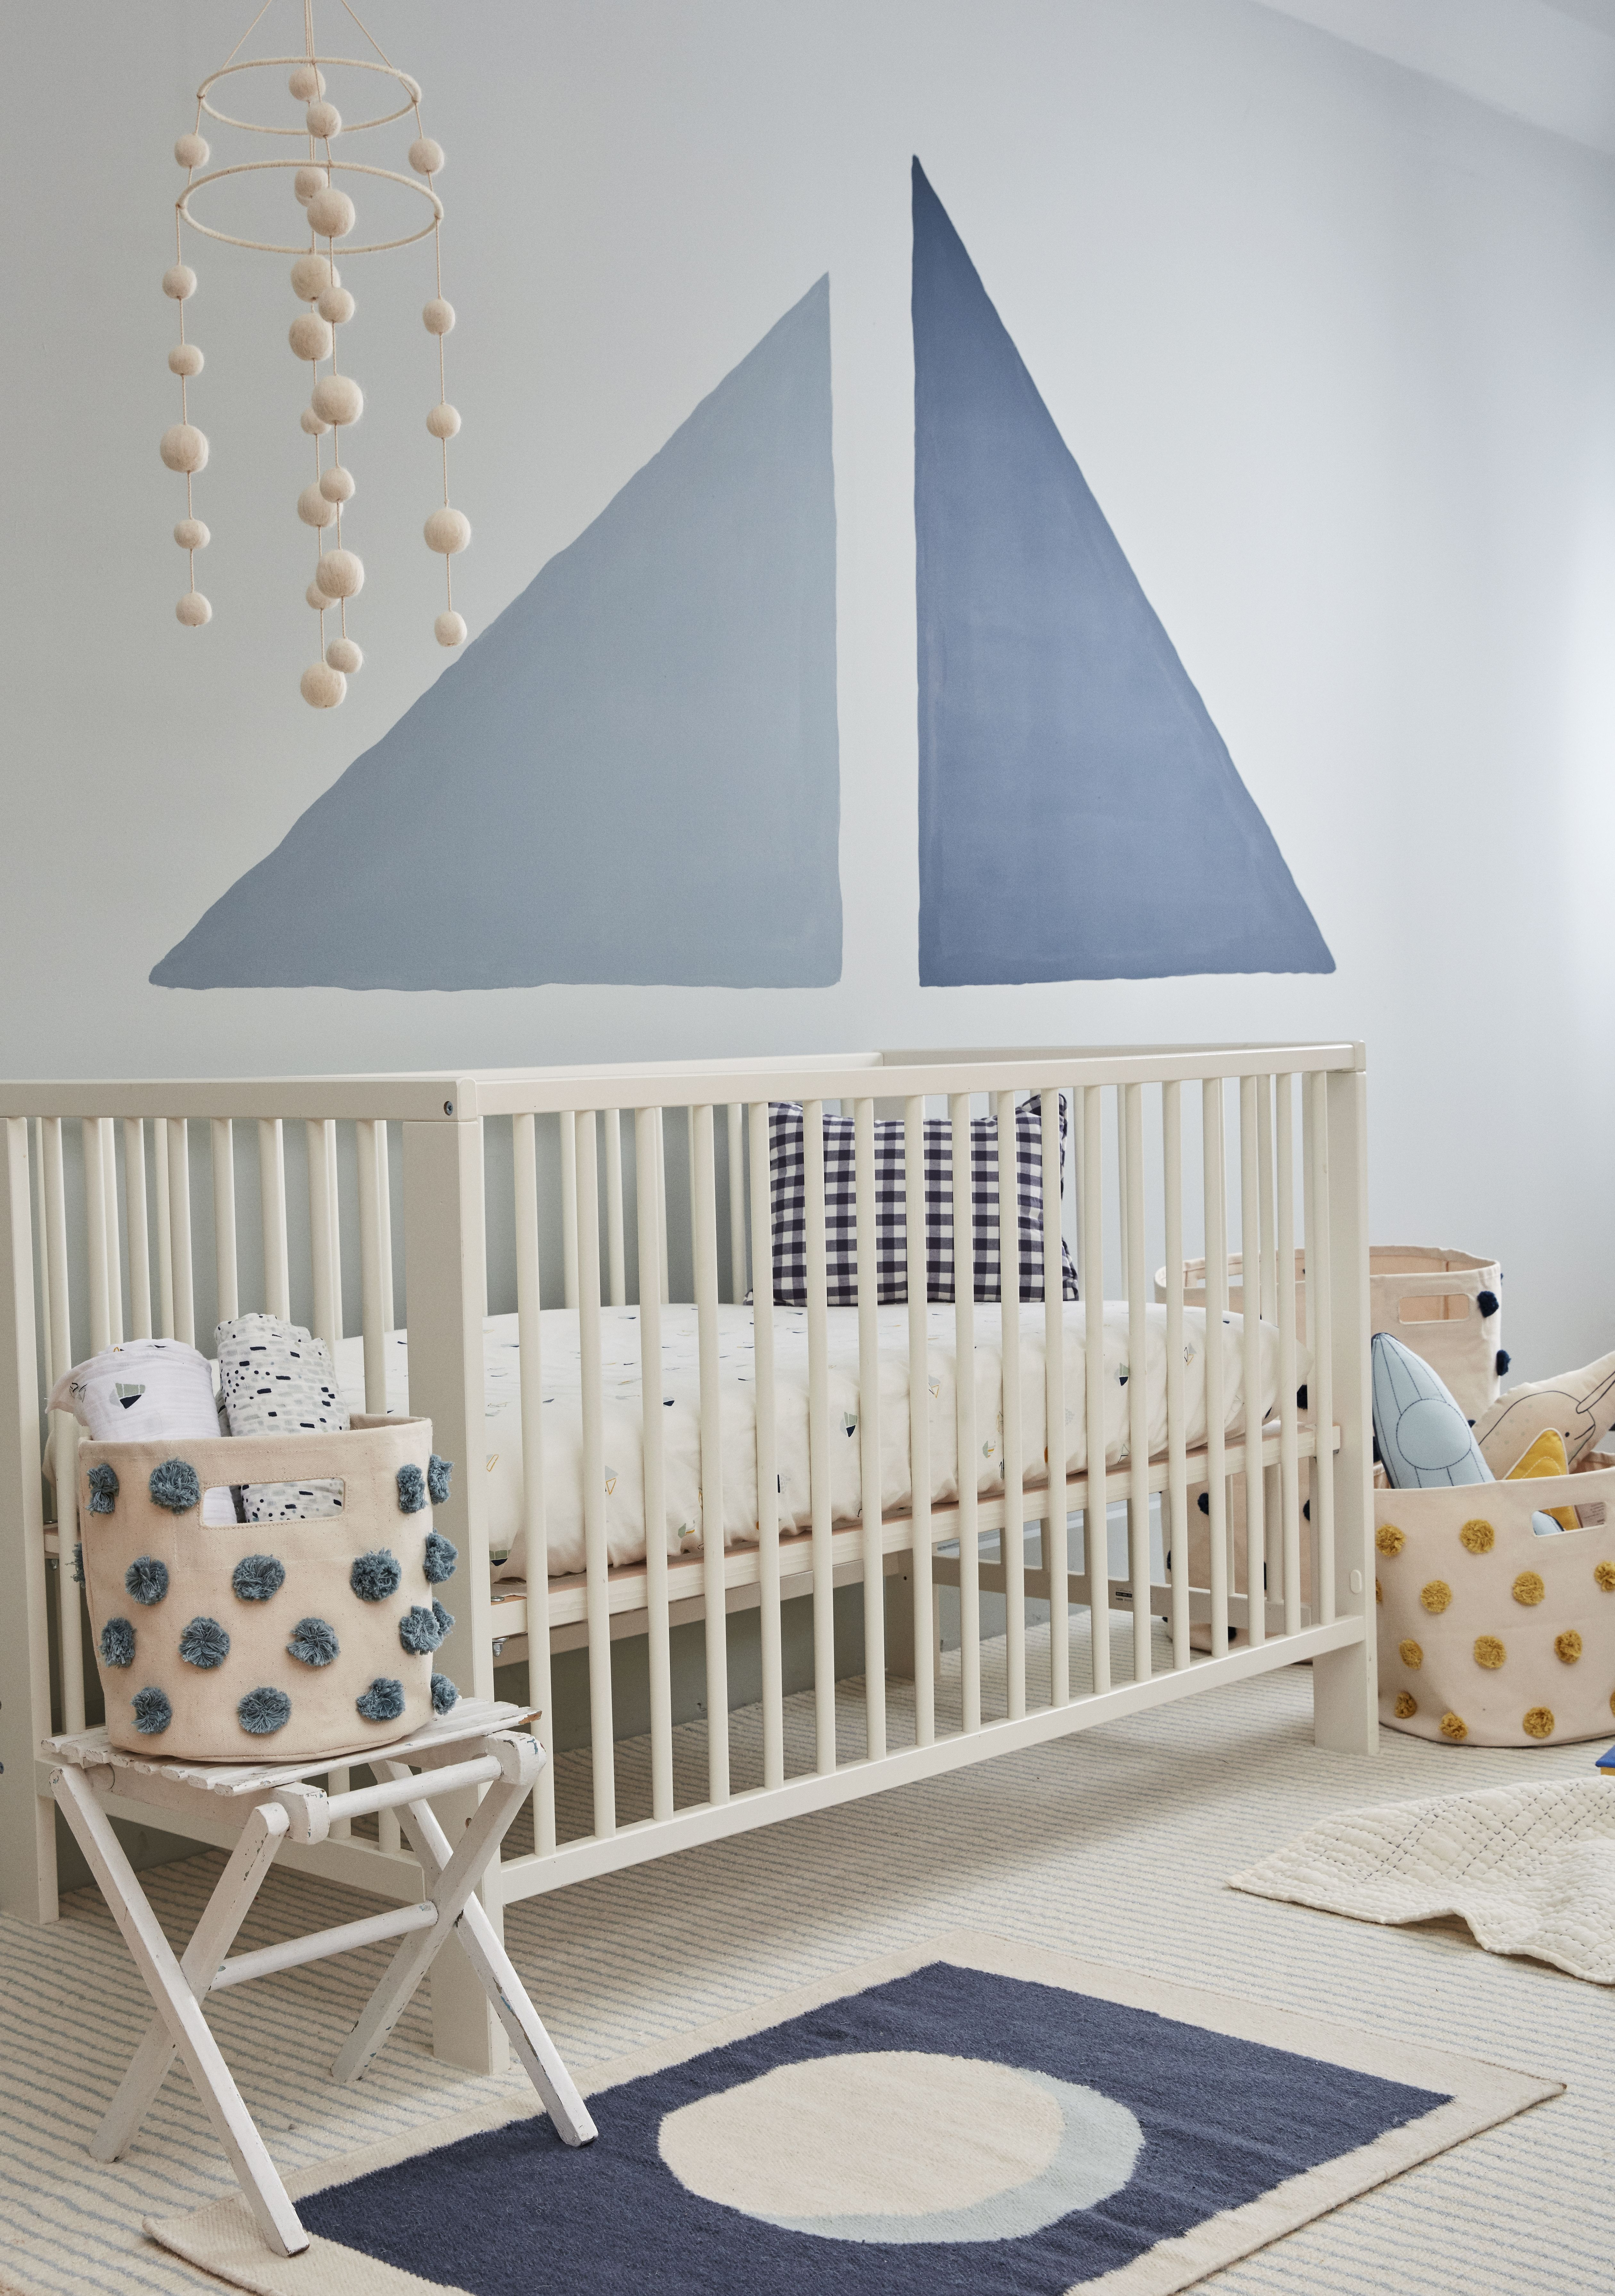 Featuring The Pehr Organic Sailor Crib Sheet And All The Items That Pehr With It With Images Sailor Nursery Flat Weave Rug Nursery